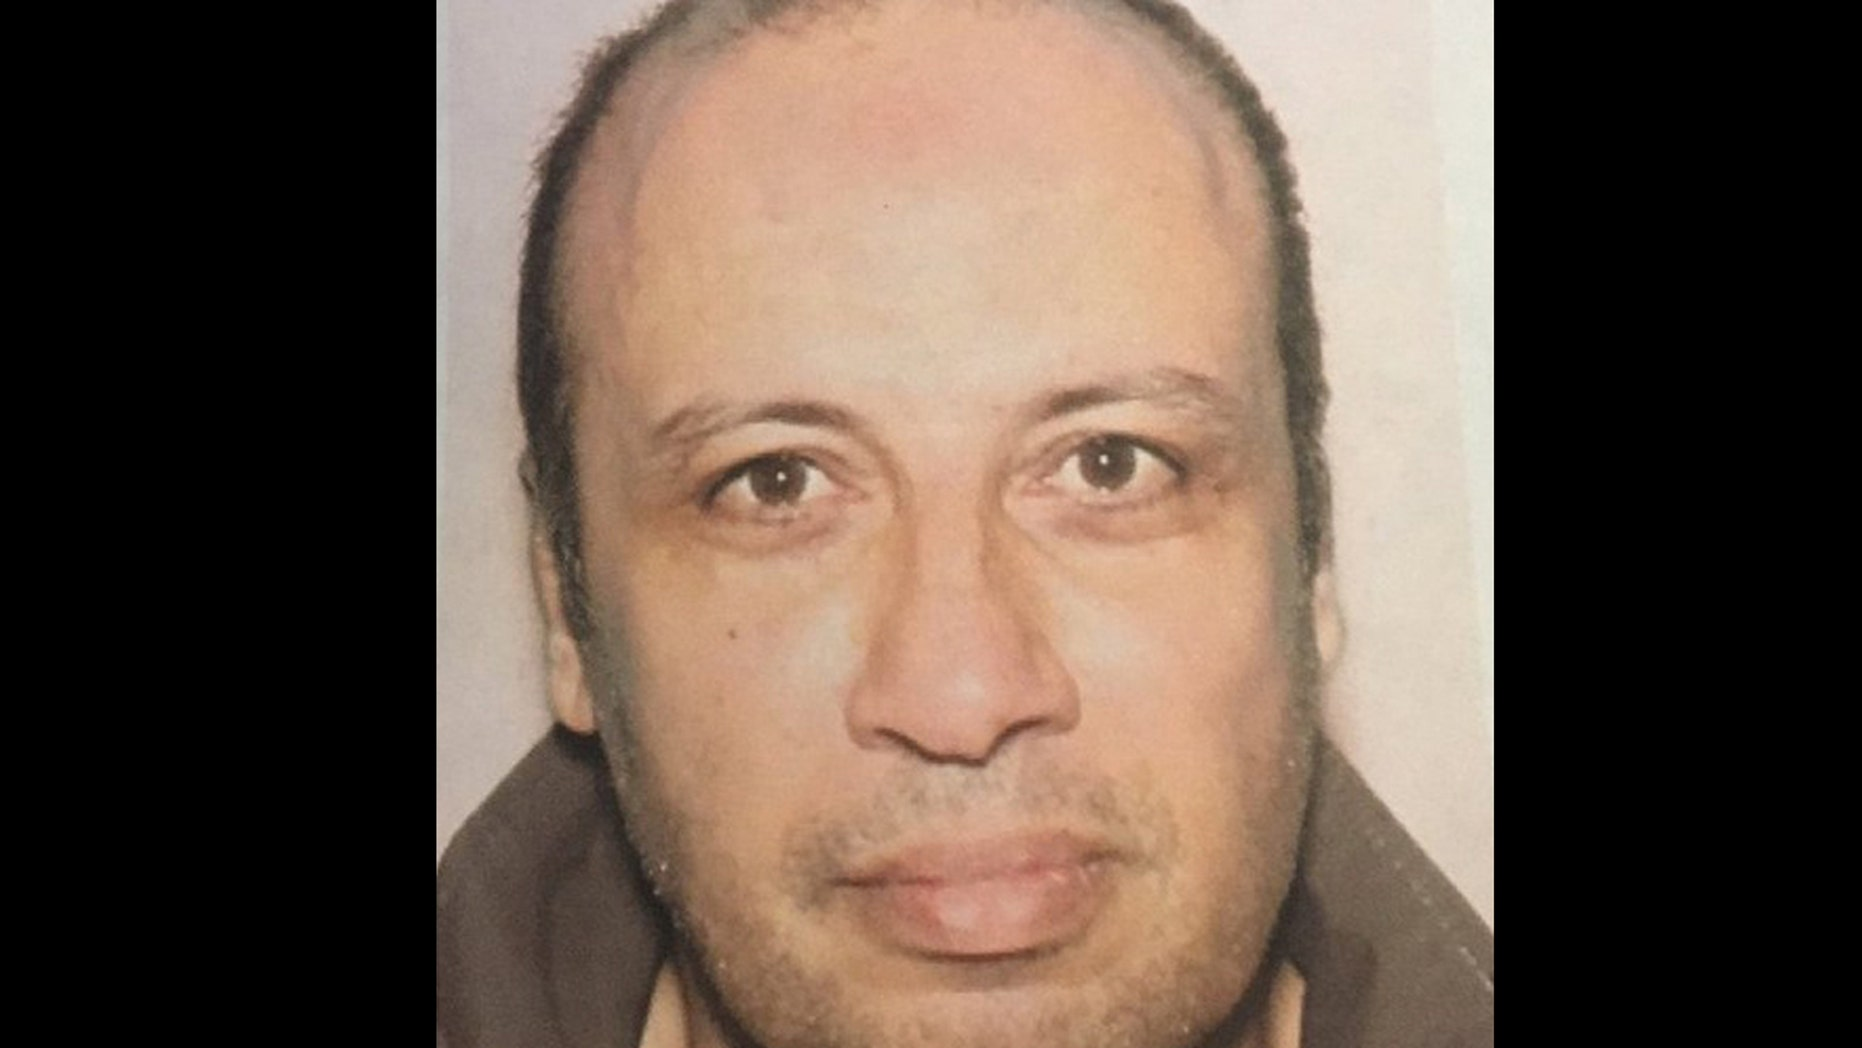 Police shot and killed Ahmed Aminamin El-Mofty, who was identified as a shooting suspect in Harrisburg, Pa., Dec. 22, 2017.